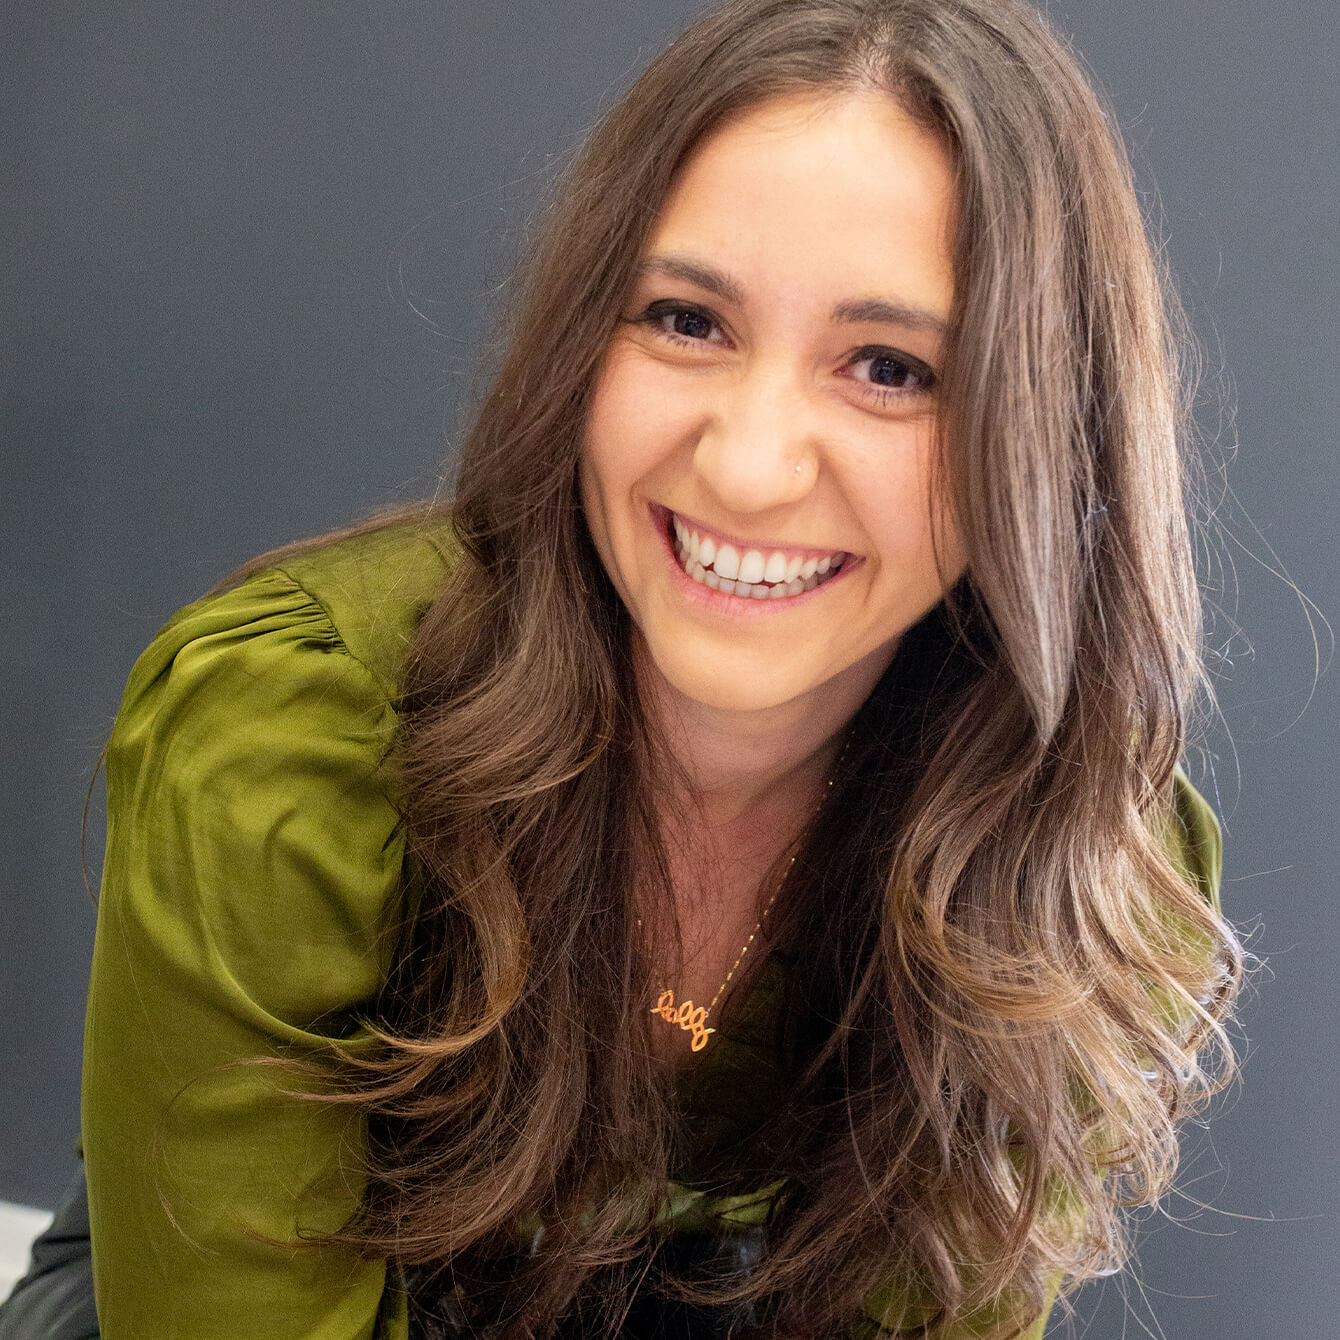 Danielle Braemer, CEO and Founder of Lolly Cannabis